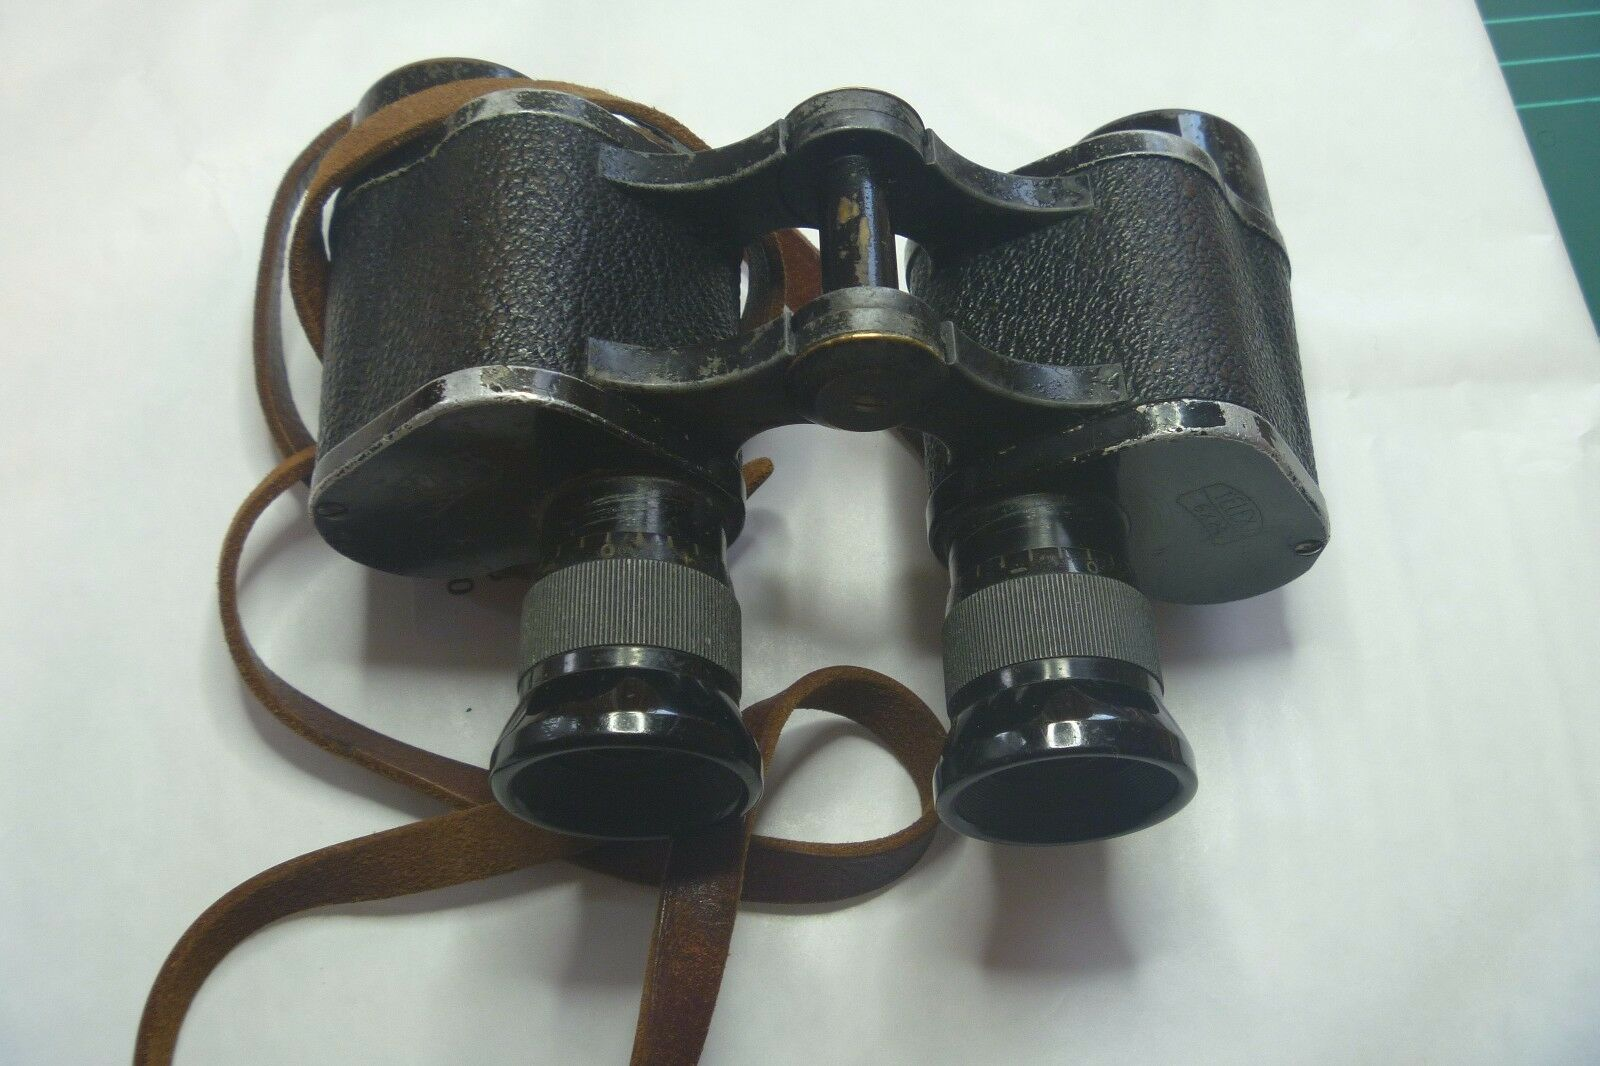 Vintage Genuine Carl Zeiss Jena Telex 6x24 binoculars  1585259    (Germany)